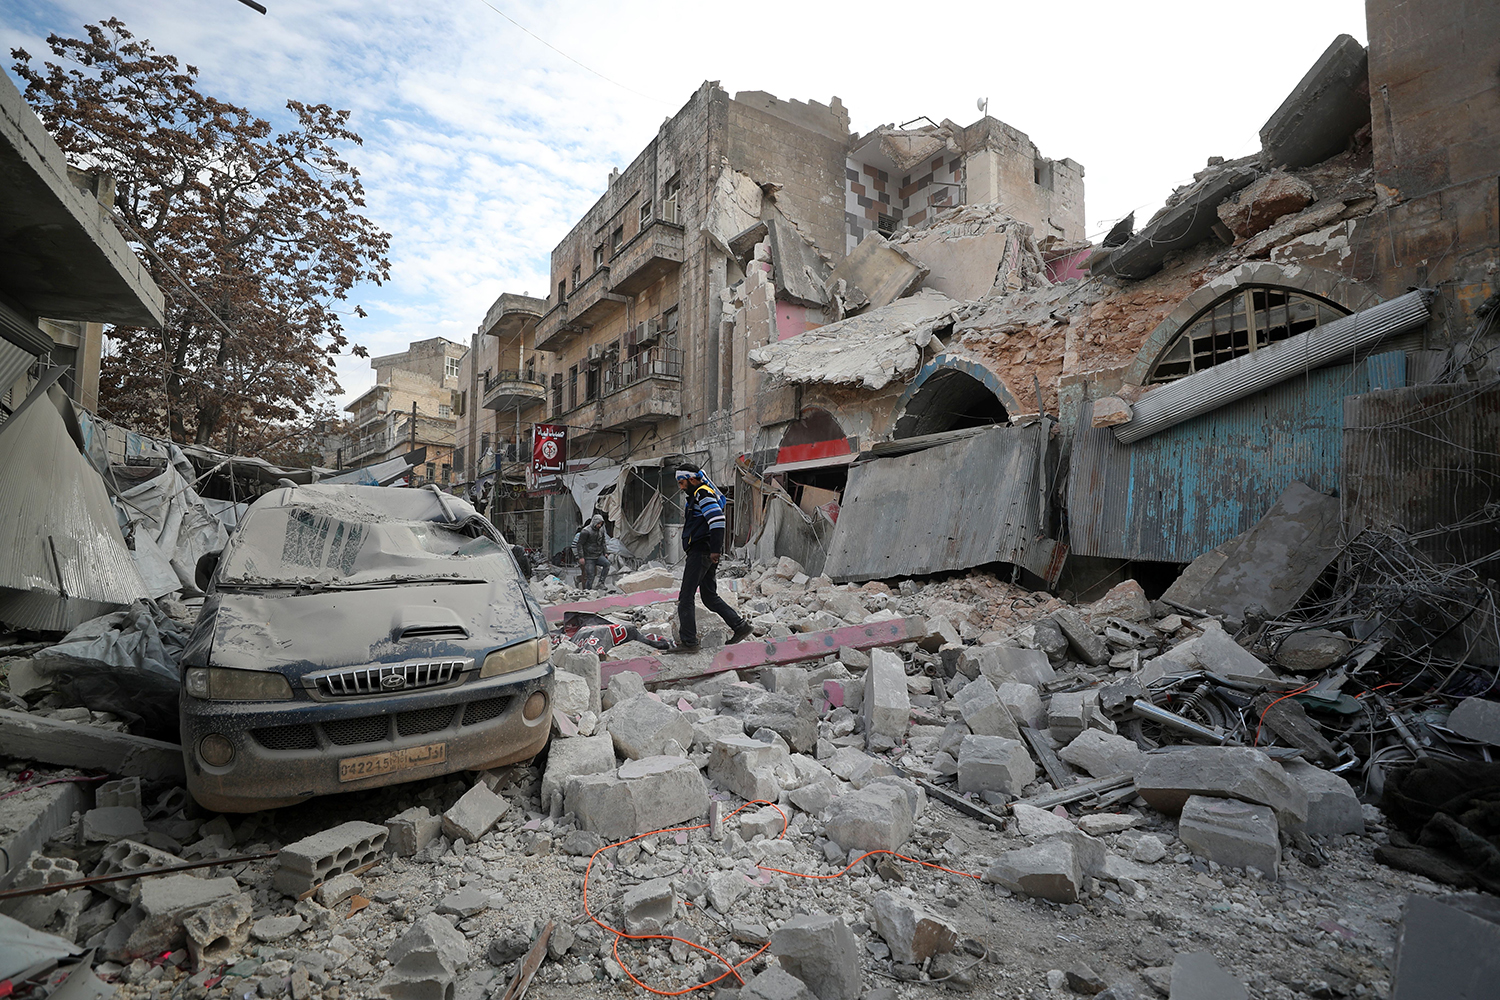 A Syrian walks on the rubble of a building following a regime air strike on Ariha town in Syria's last major opposition bastion of Idlib on Jan. 15. OMAR HAJ KADOUR/AFP via Getty Images